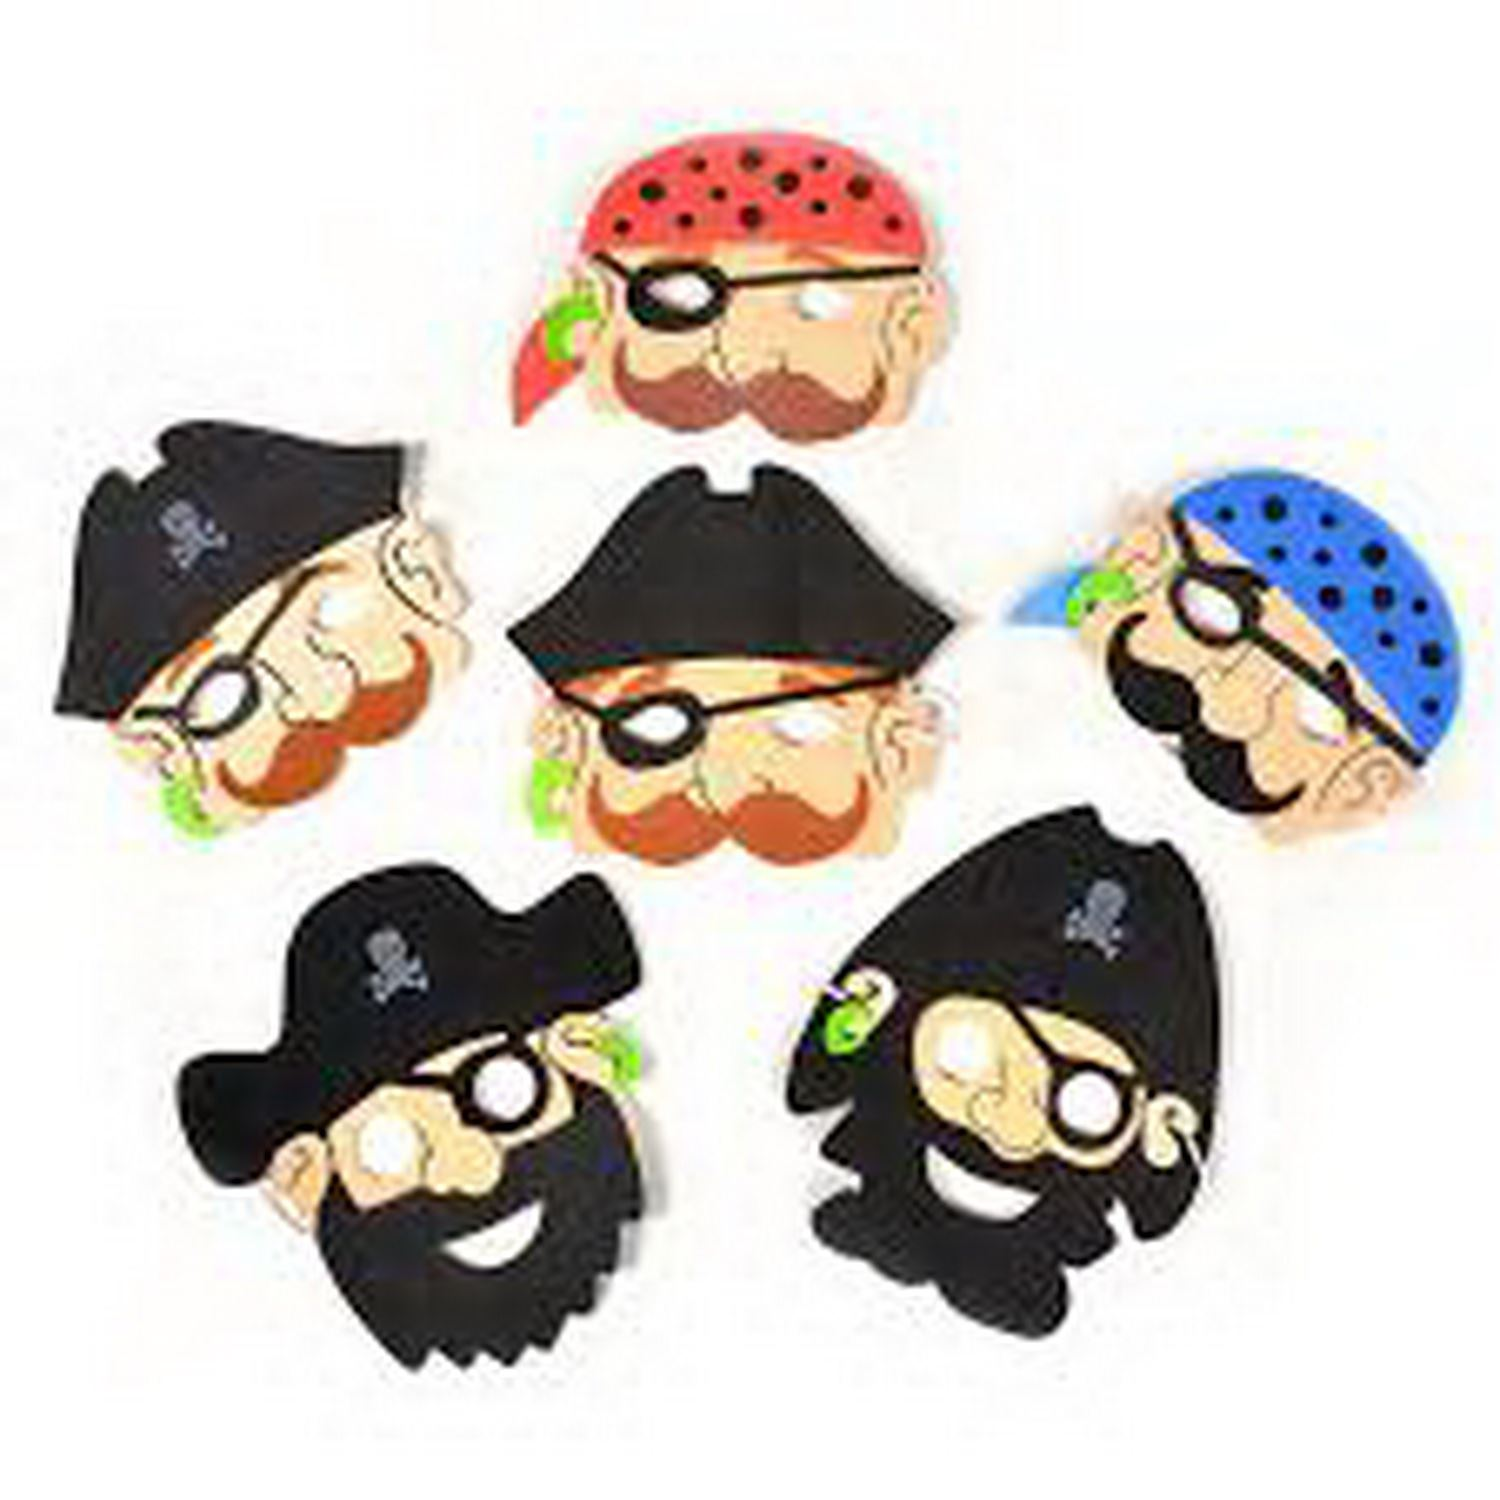 6 Foam Pirate Masks Pinata Toy Loot/Party Bag Fillers Favour Fancy Dress Kids